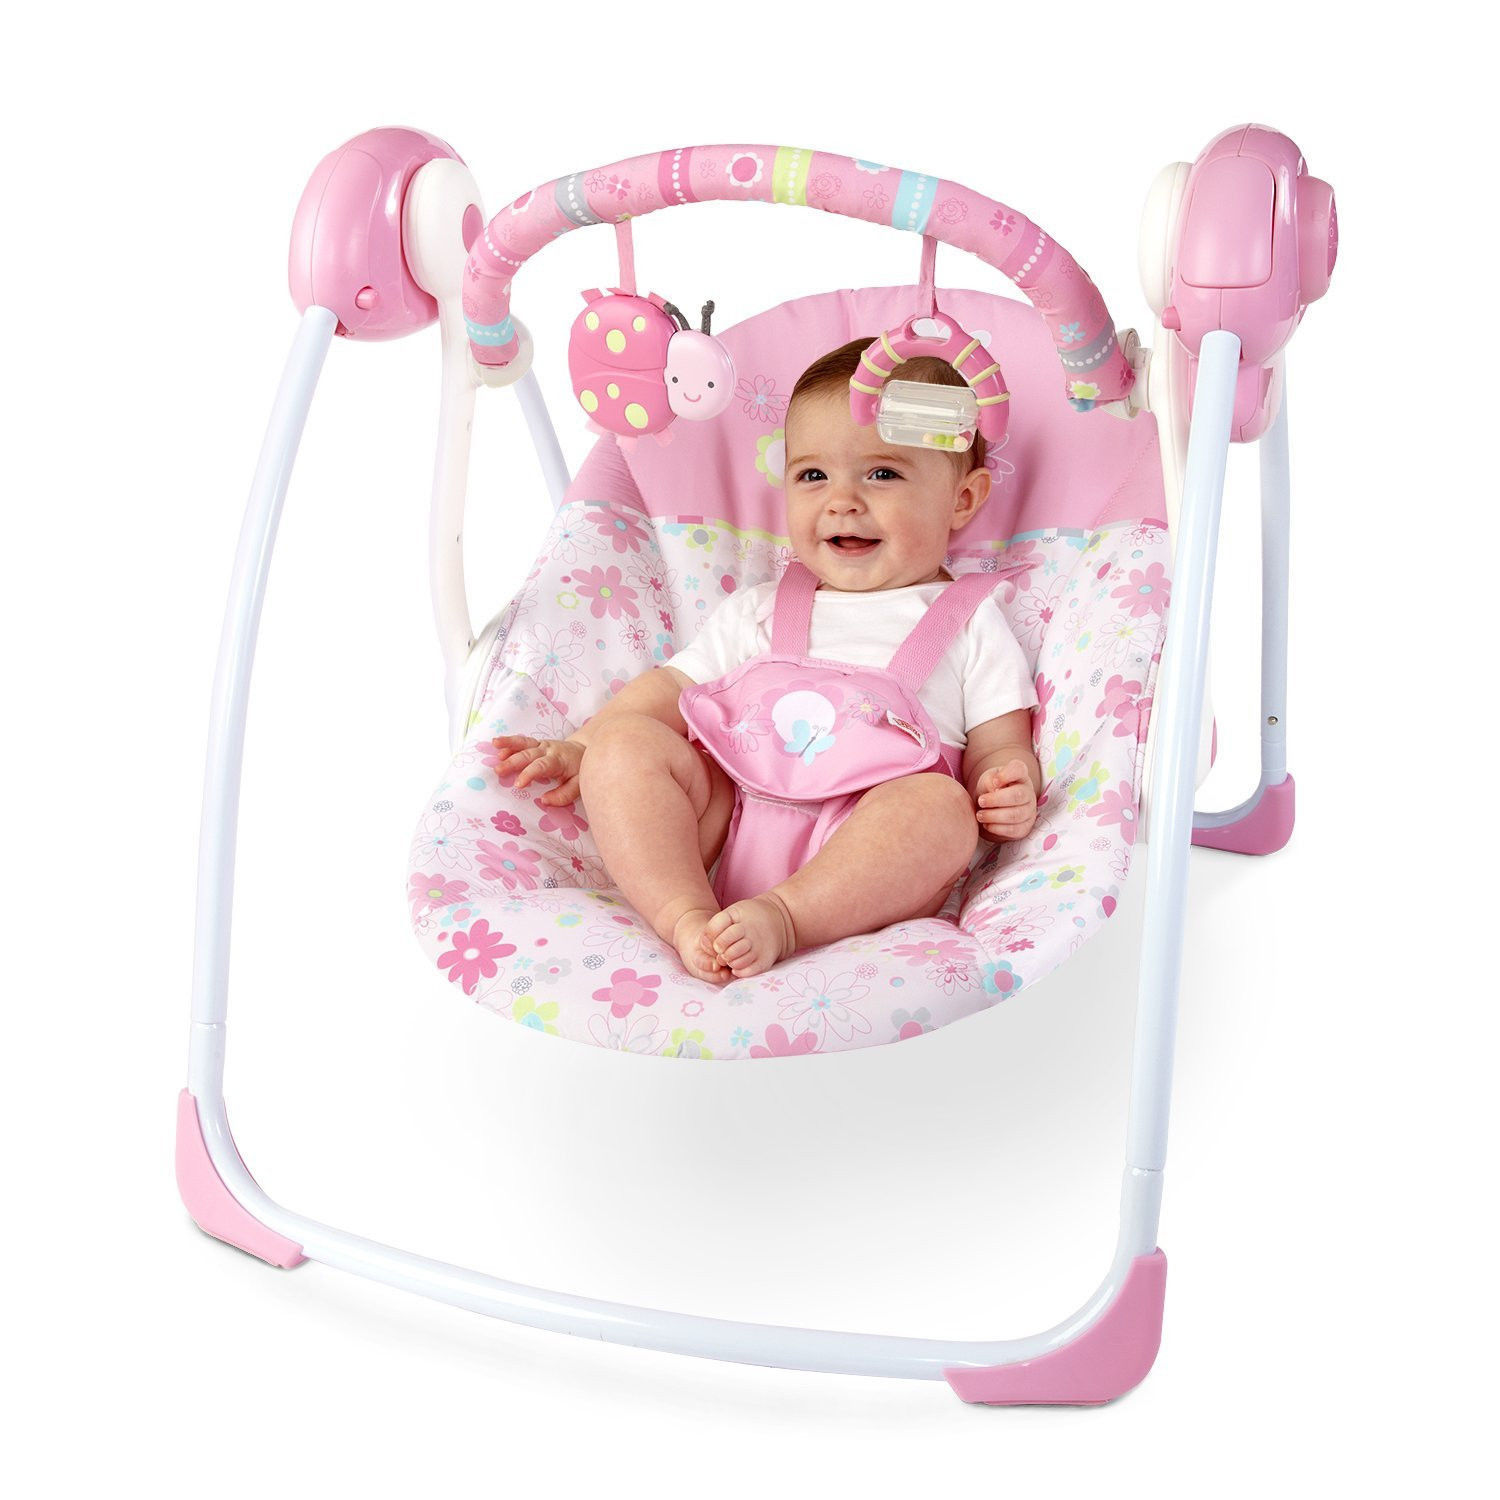 baby chair swing pink catnapper lift girl portable 6 speeds and 2 reclines mobile